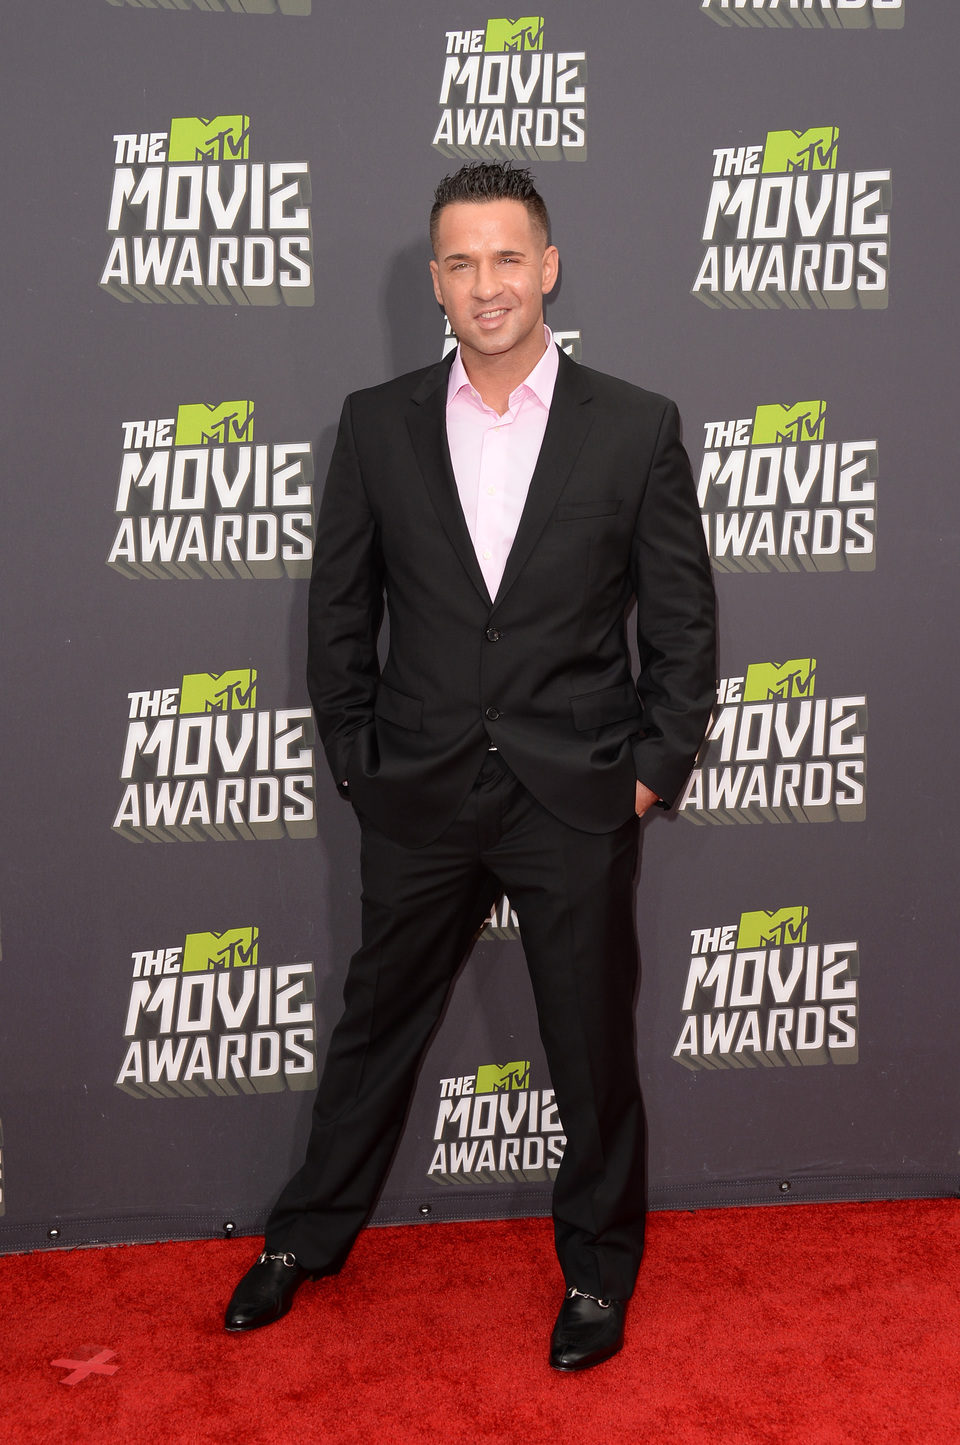 Mike 'The Situation' en la alfombra roja de la entrega de los MTV Movie Awards 2013